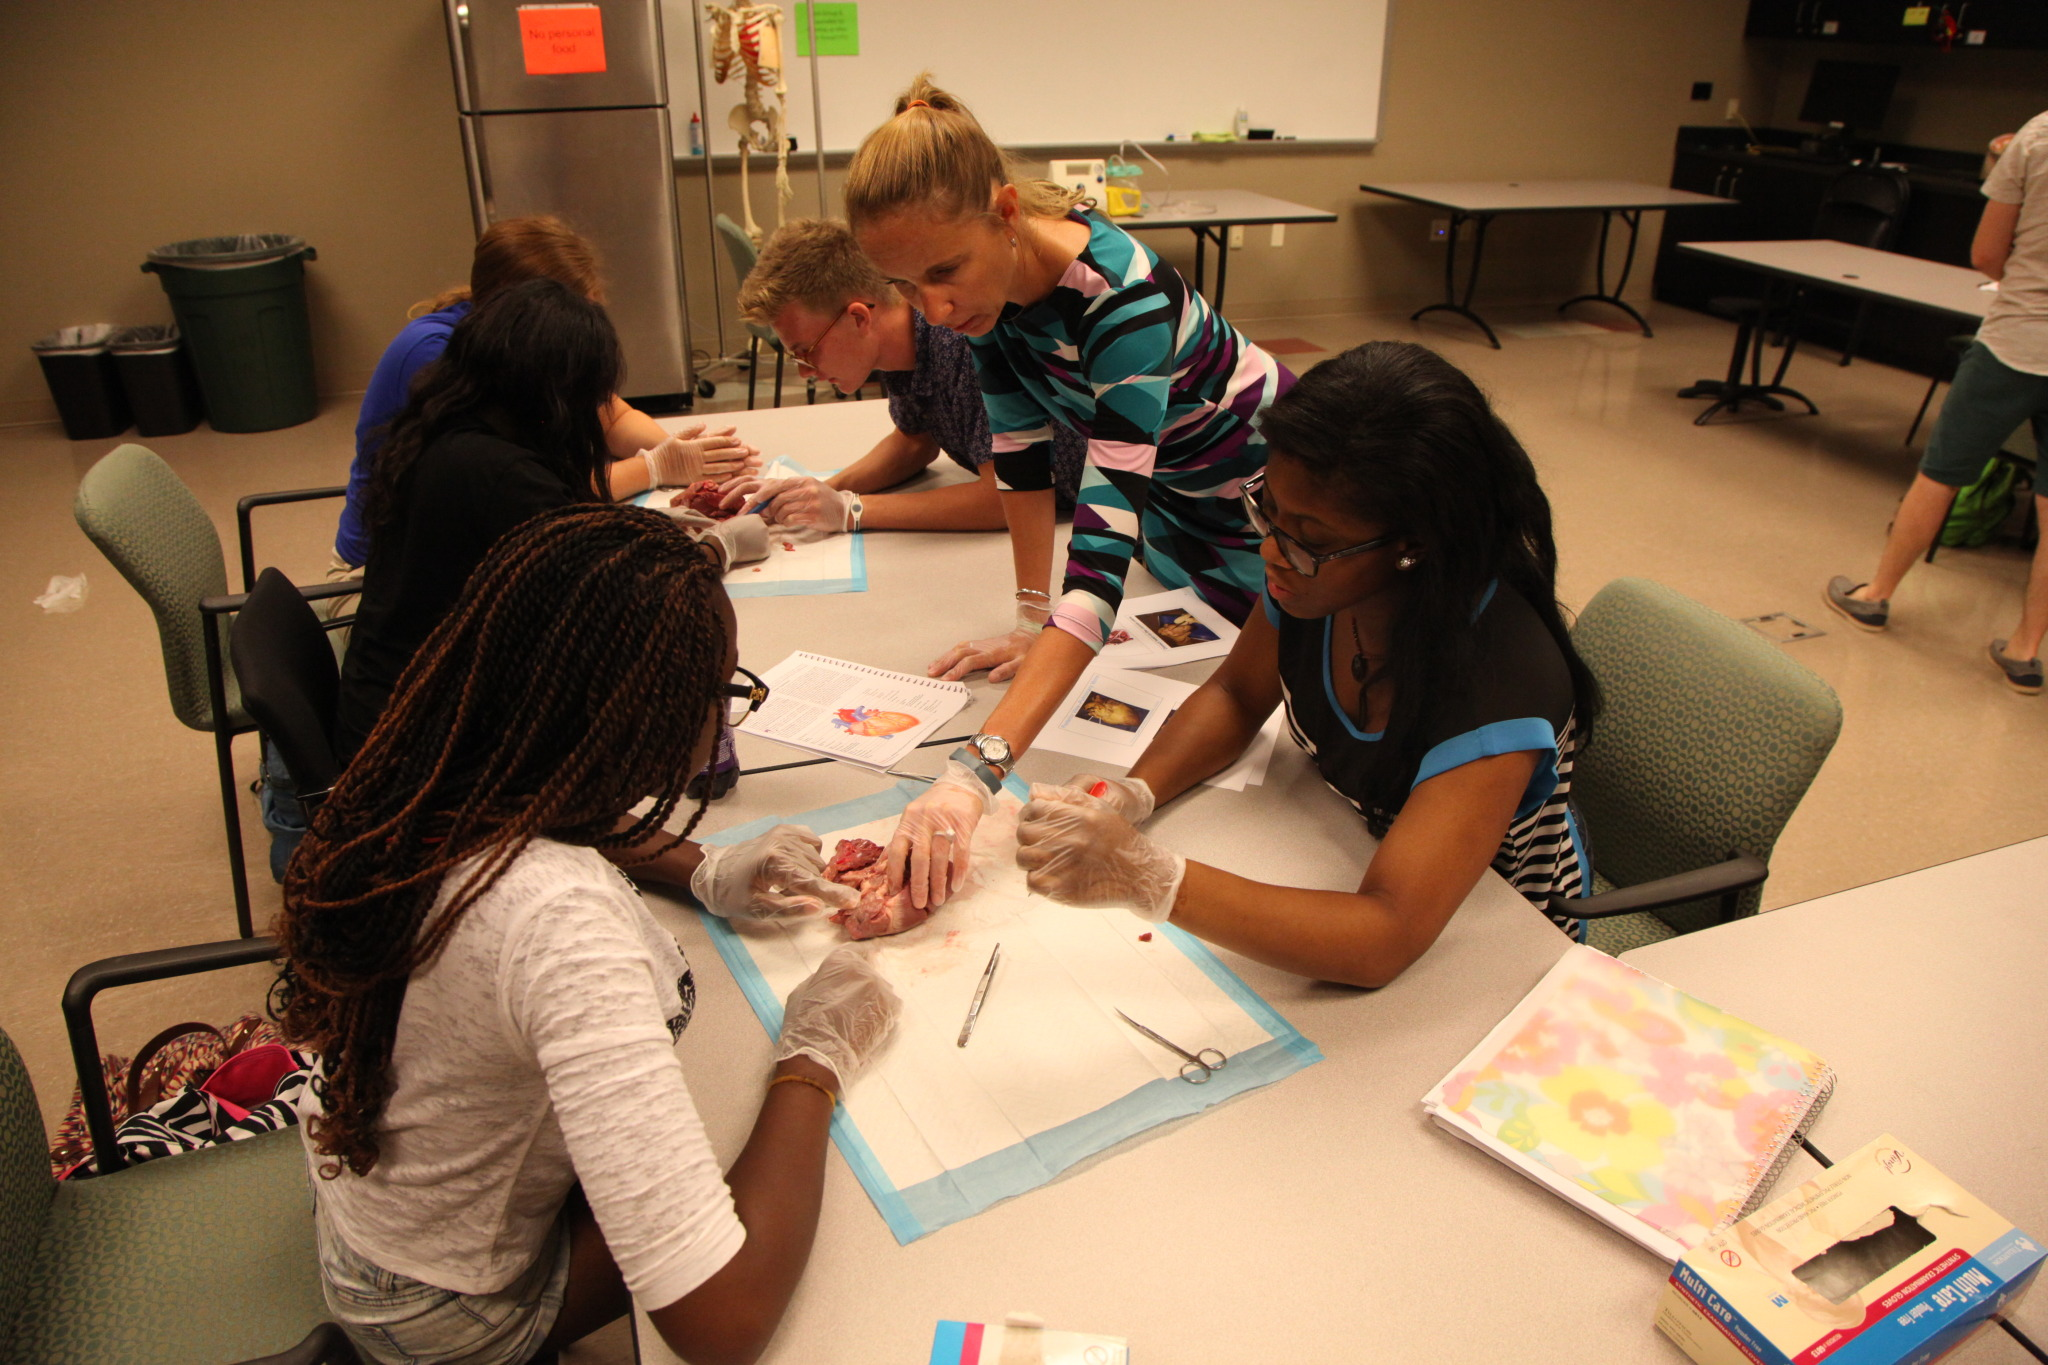 Summer Program - Forensic Science | Emory University Summer Pre-College Program: Pre-Health and Science